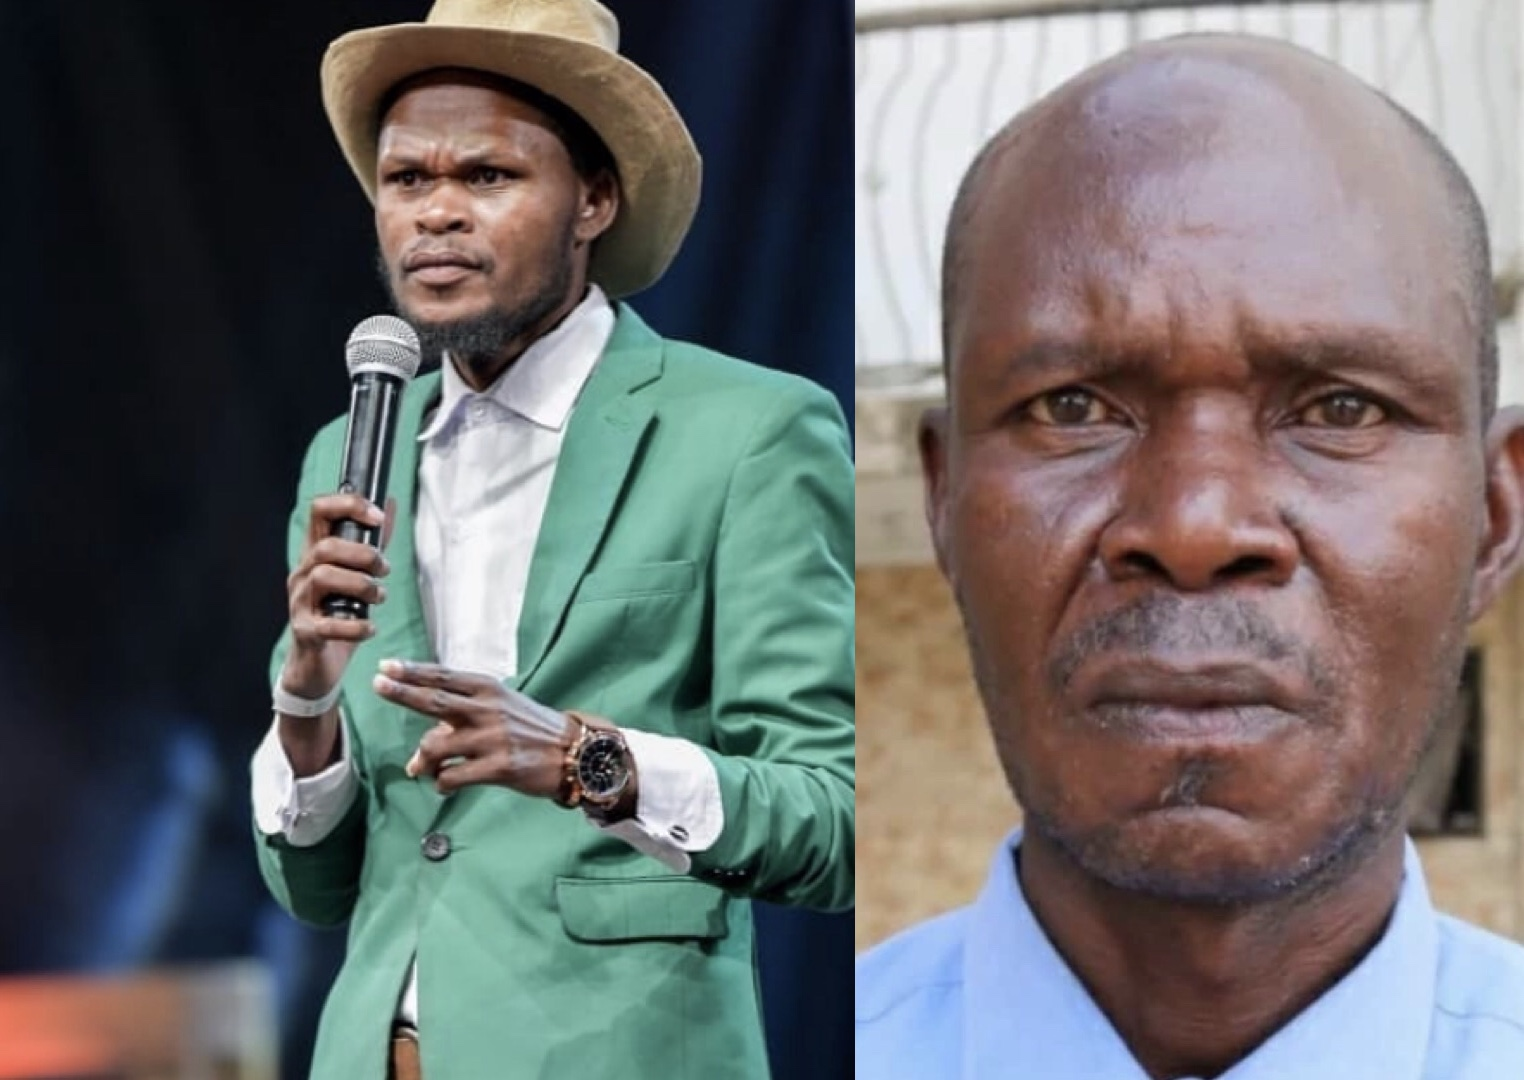 Othuol Othuol father speaks about his son's life - regrets not supporting his comedy career